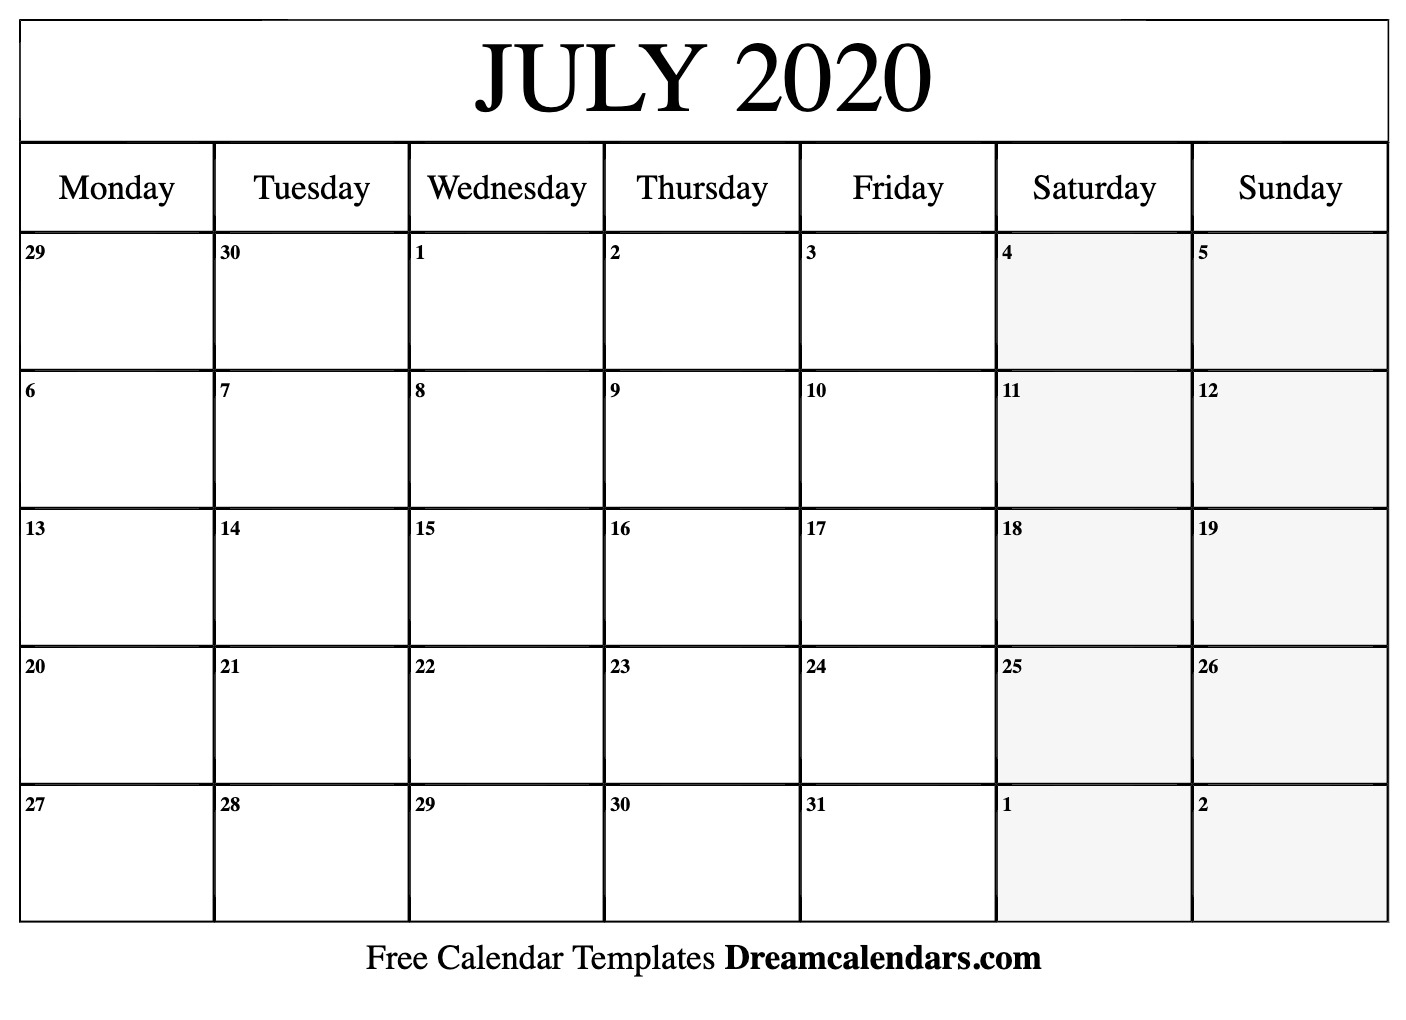 July 2020 Template - Wpa.wpart.co